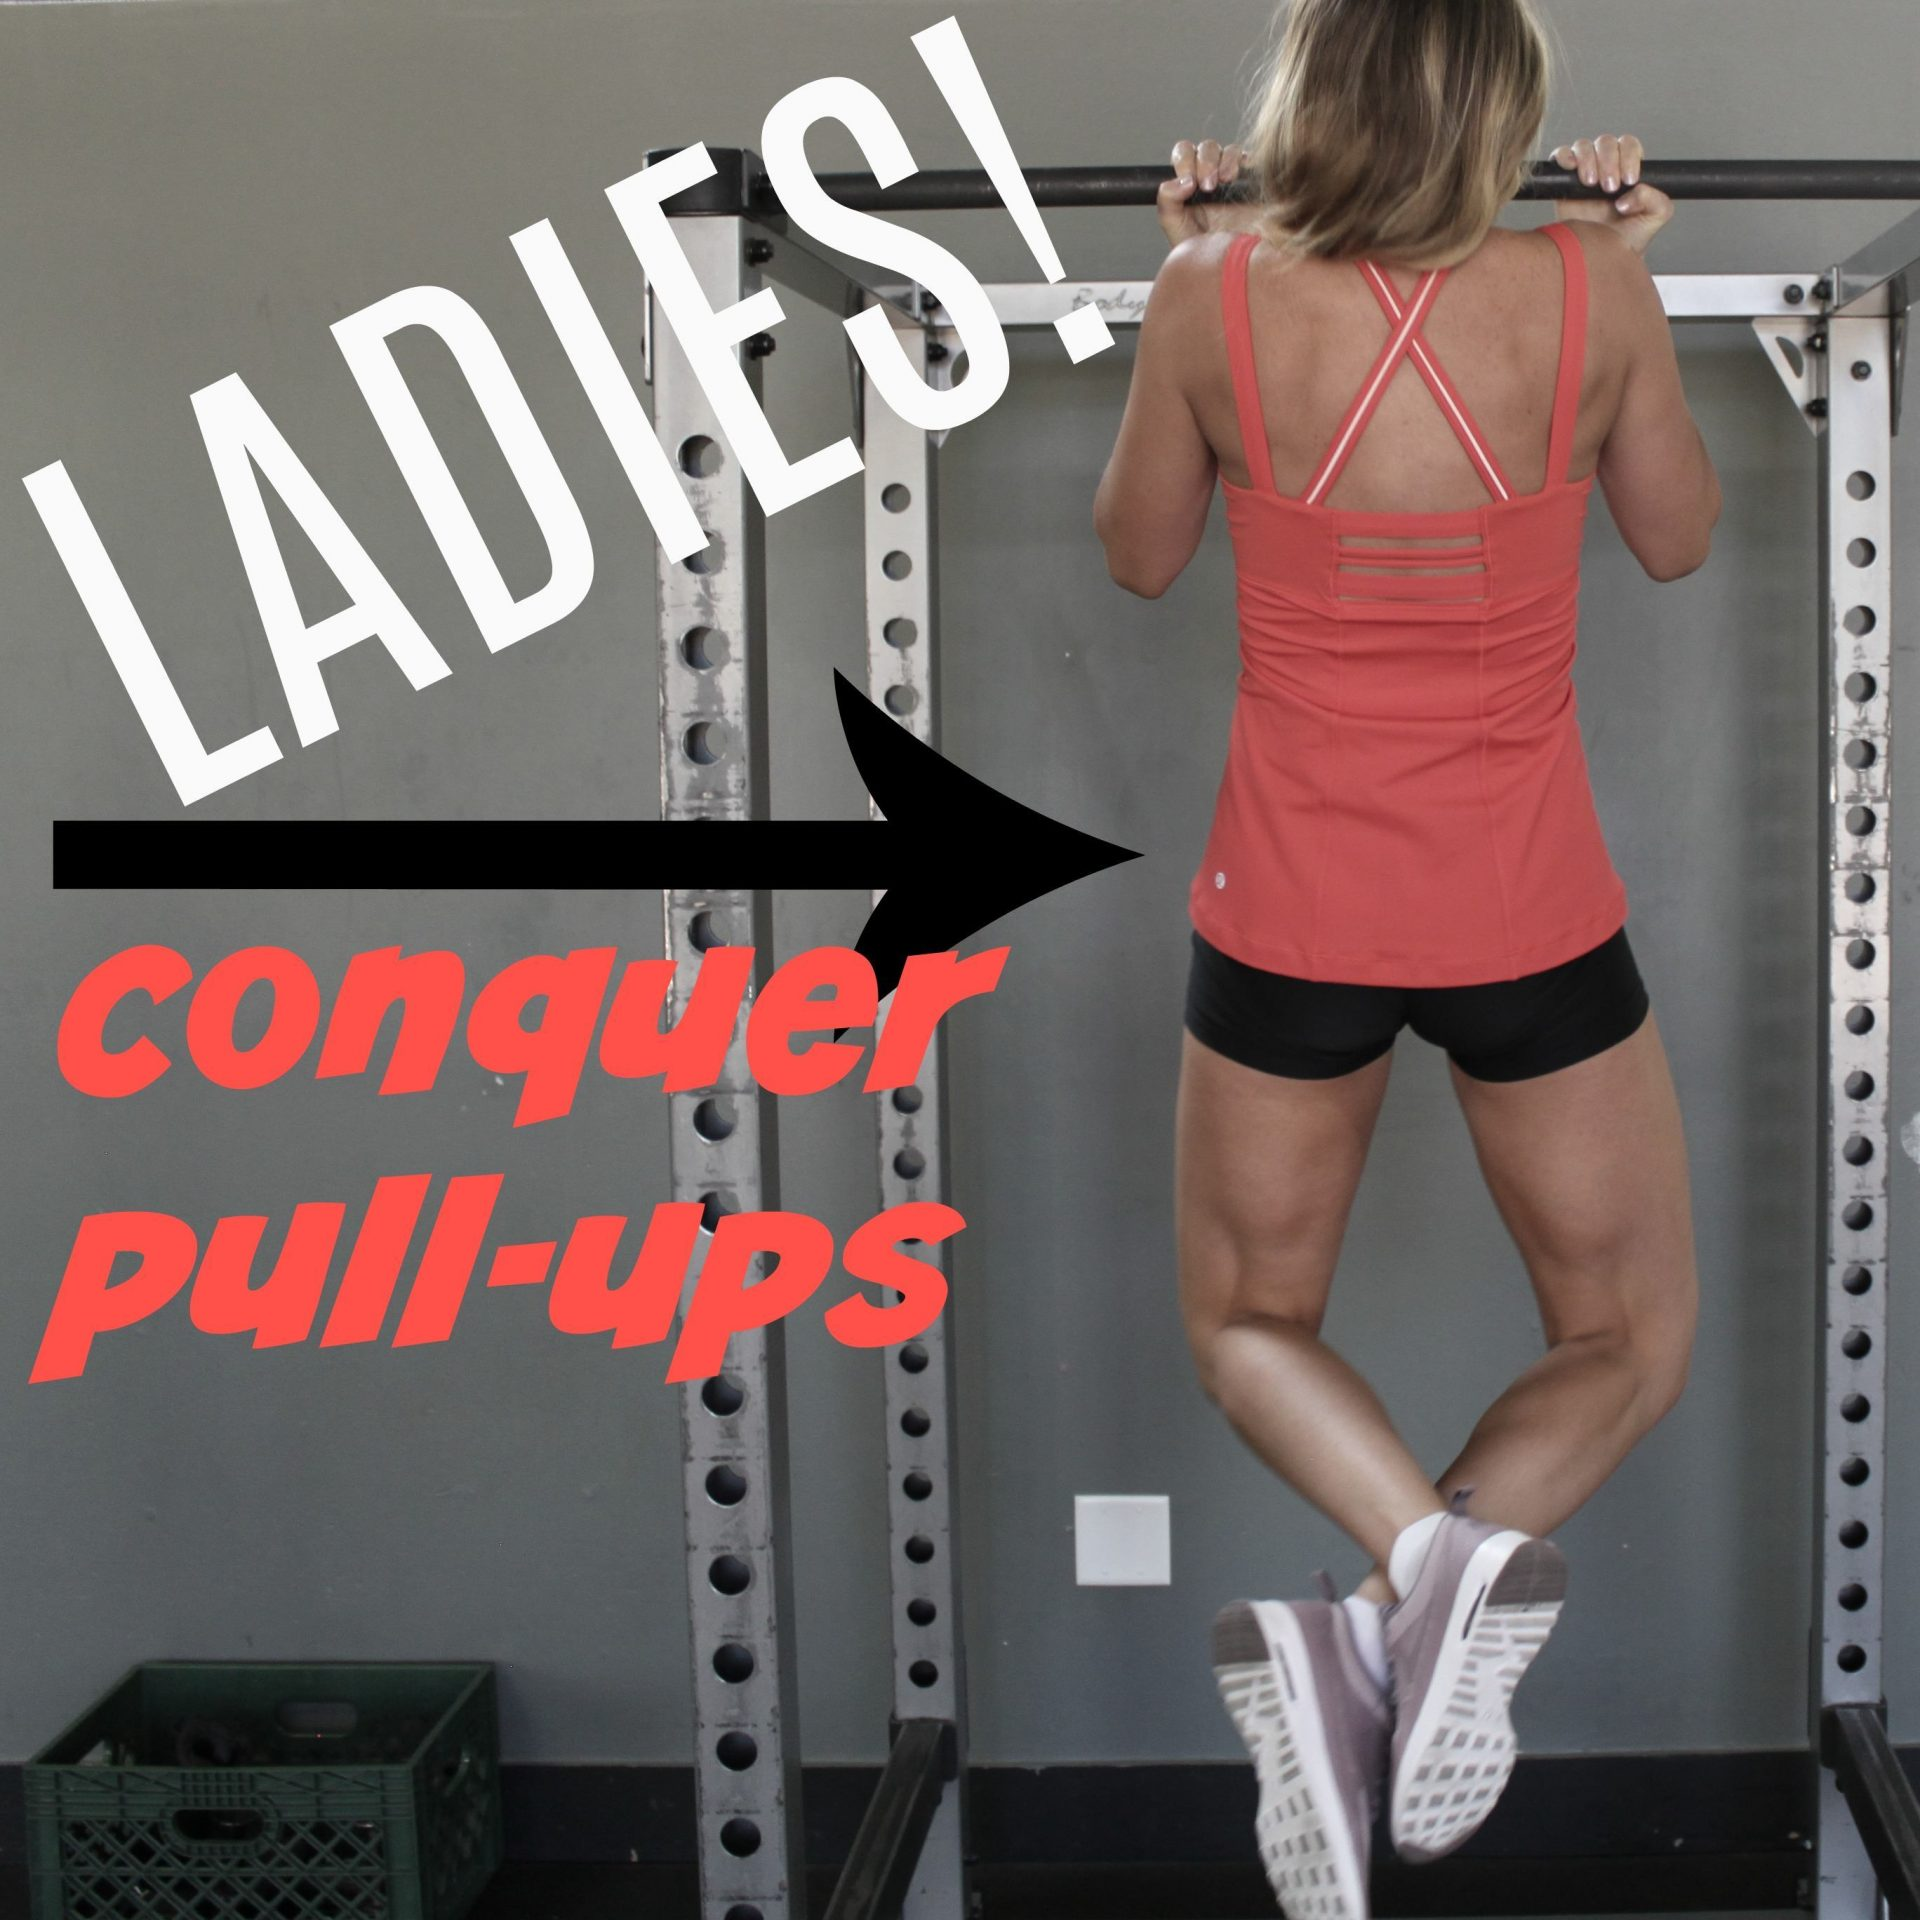 ladies how to do pull-ups